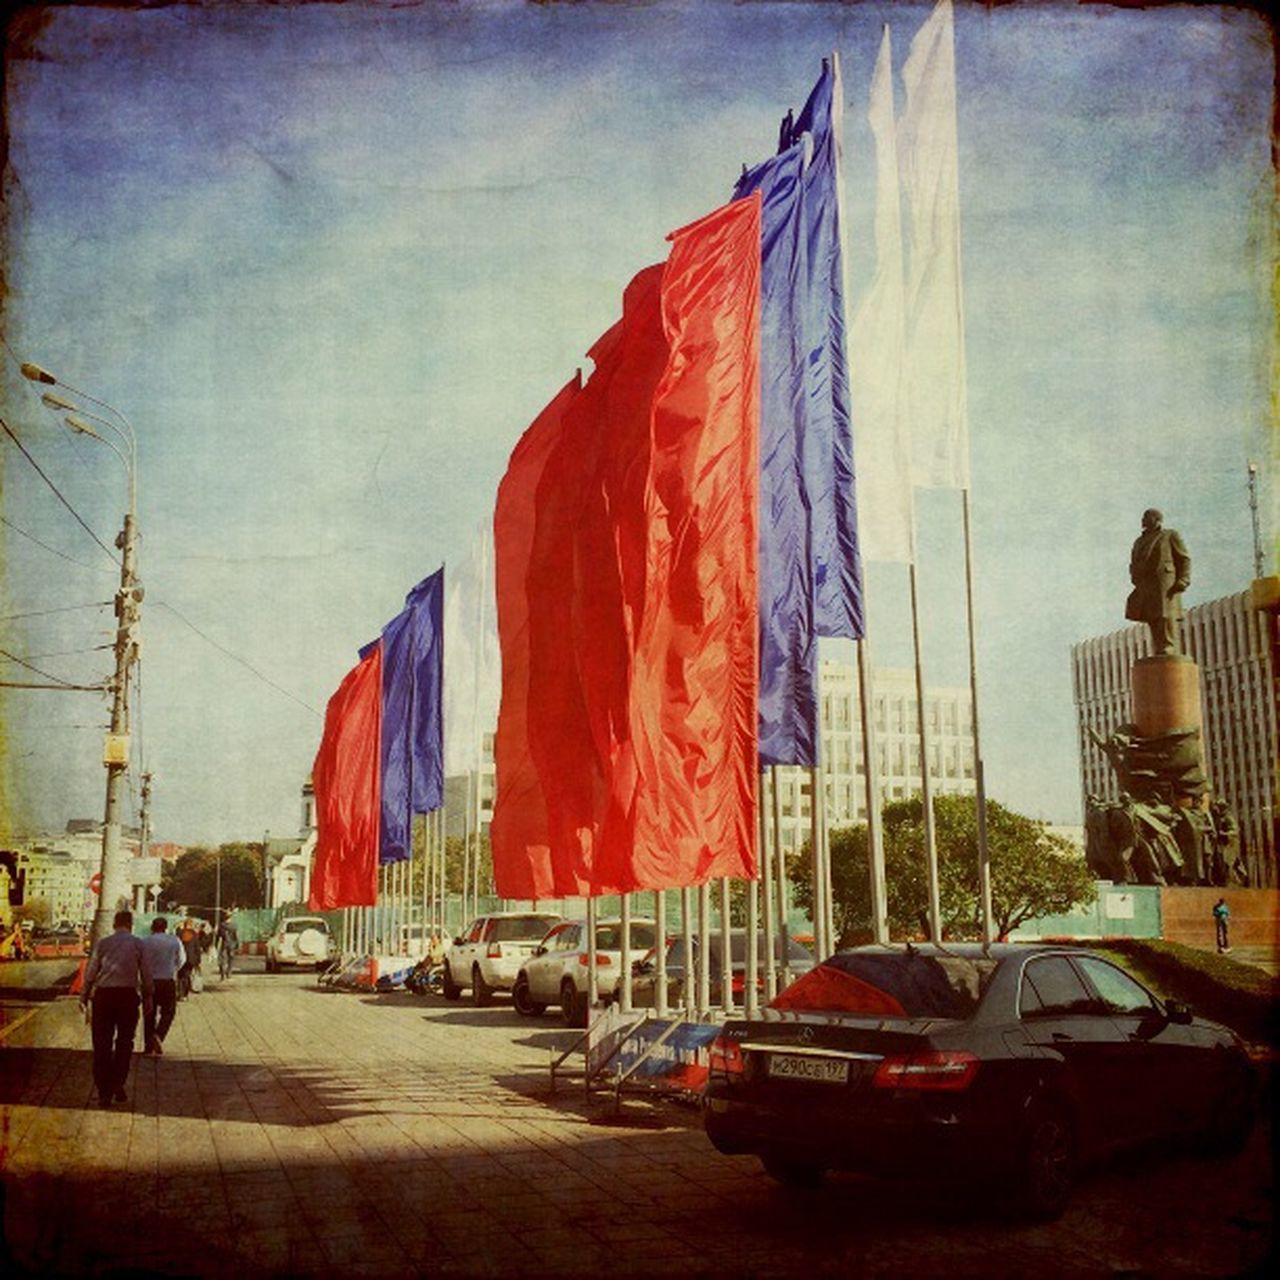 flag, car, architecture, built structure, building exterior, day, sky, real people, outdoors, city